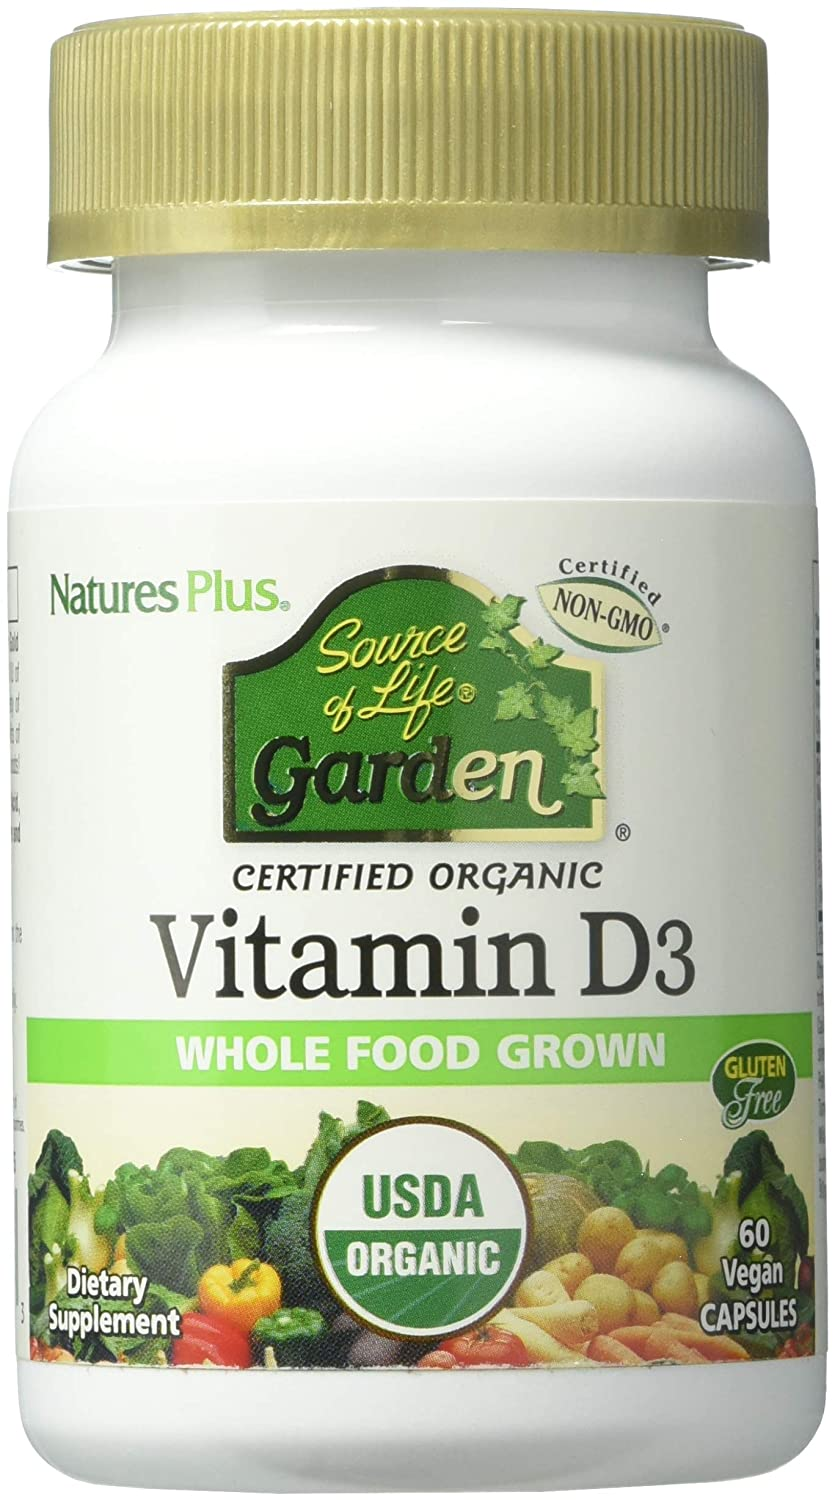 Amazon.com: Natures Plus Source of Life Garden Organic Vitamin D3  (Cholecalciferol) - 5000 IU, 60 Vegan Capsules - Gluten Free, Whole Food,  Plant Based ...